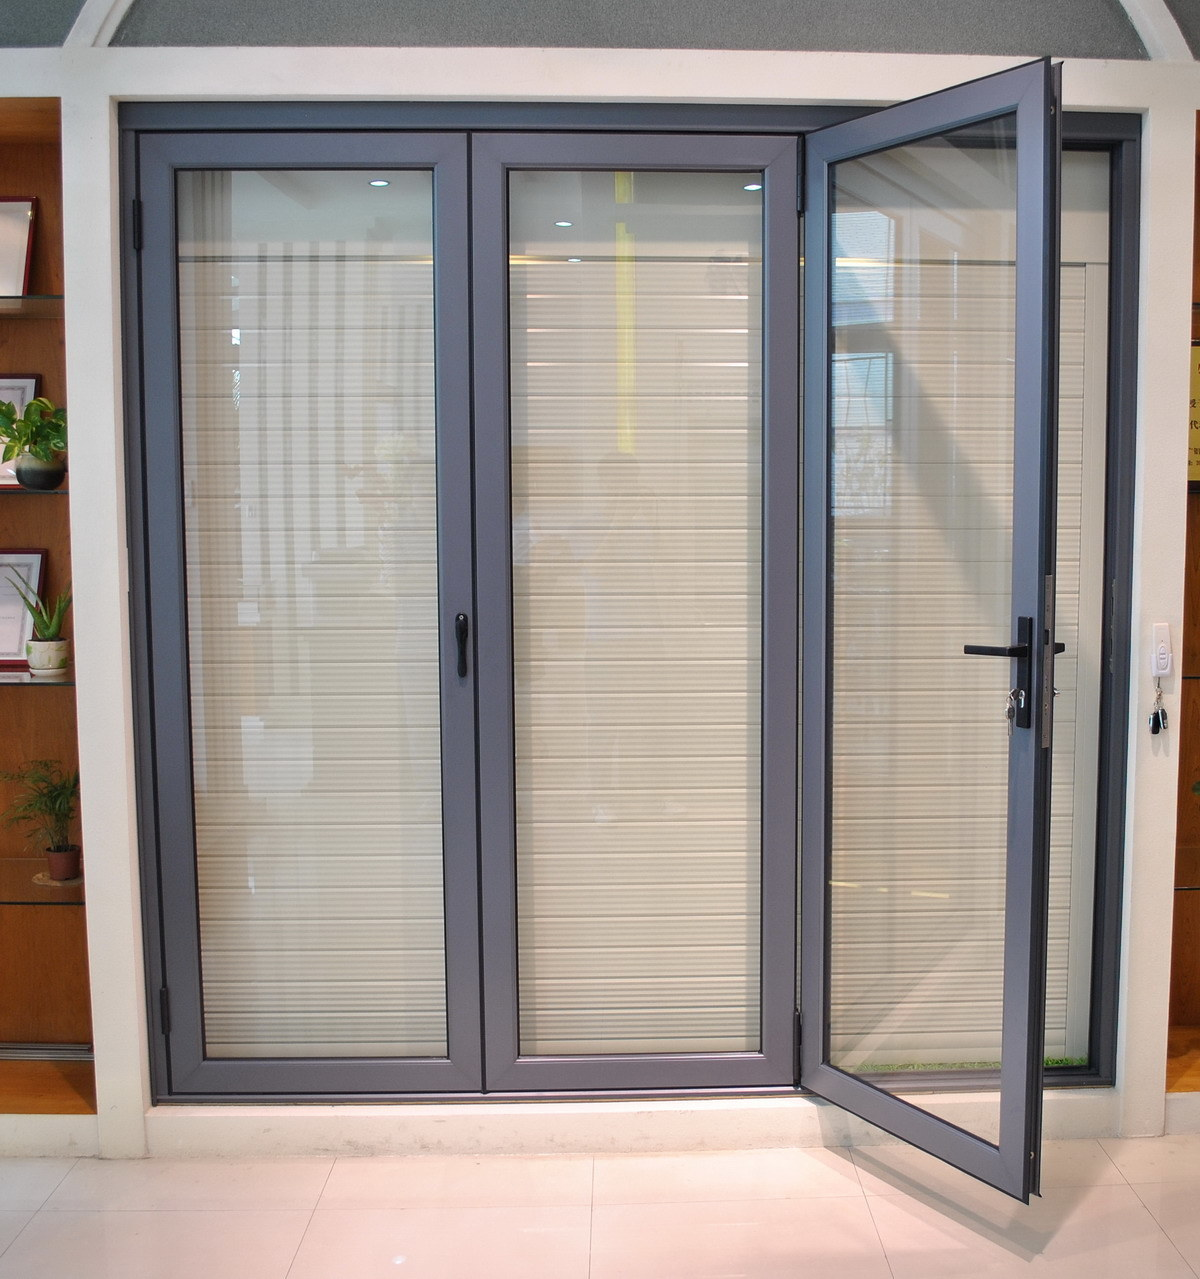 Folding doors aluminium sliding folding doors details for Aluminum sliding glass doors